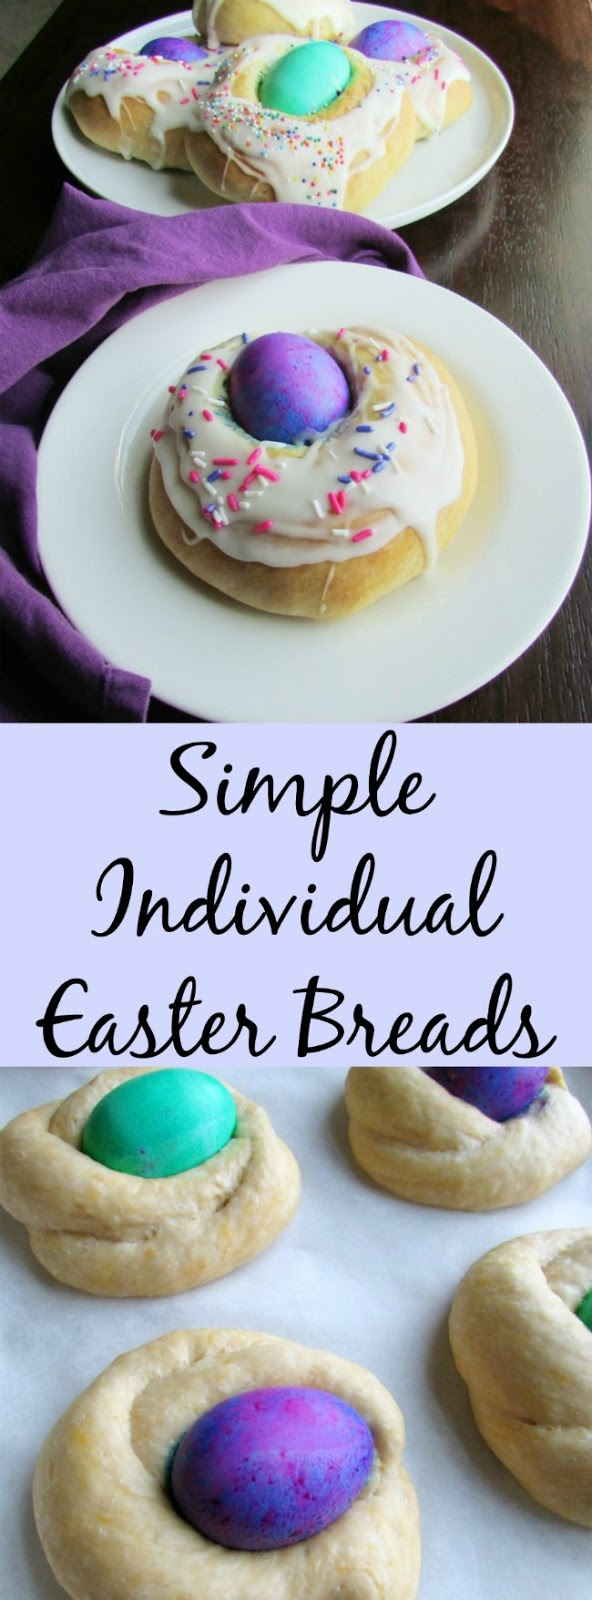 These cute Easter Breads are individual sized and easy to make. They are really festive, slightly sweet and studded with a pretty egg.